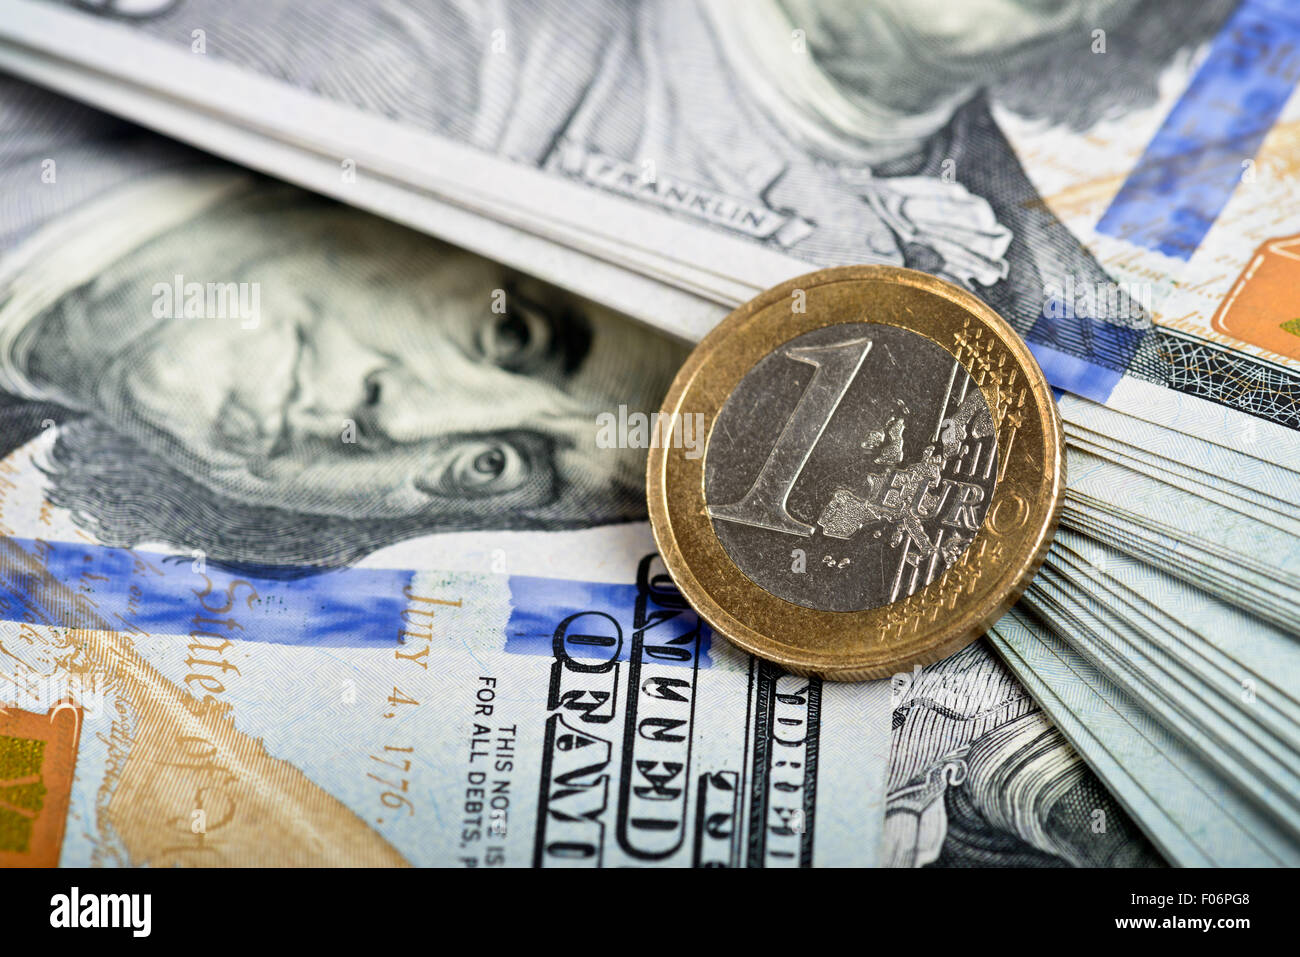 Dettaglio di una moneta in euro, su dollar note in background Immagini Stock